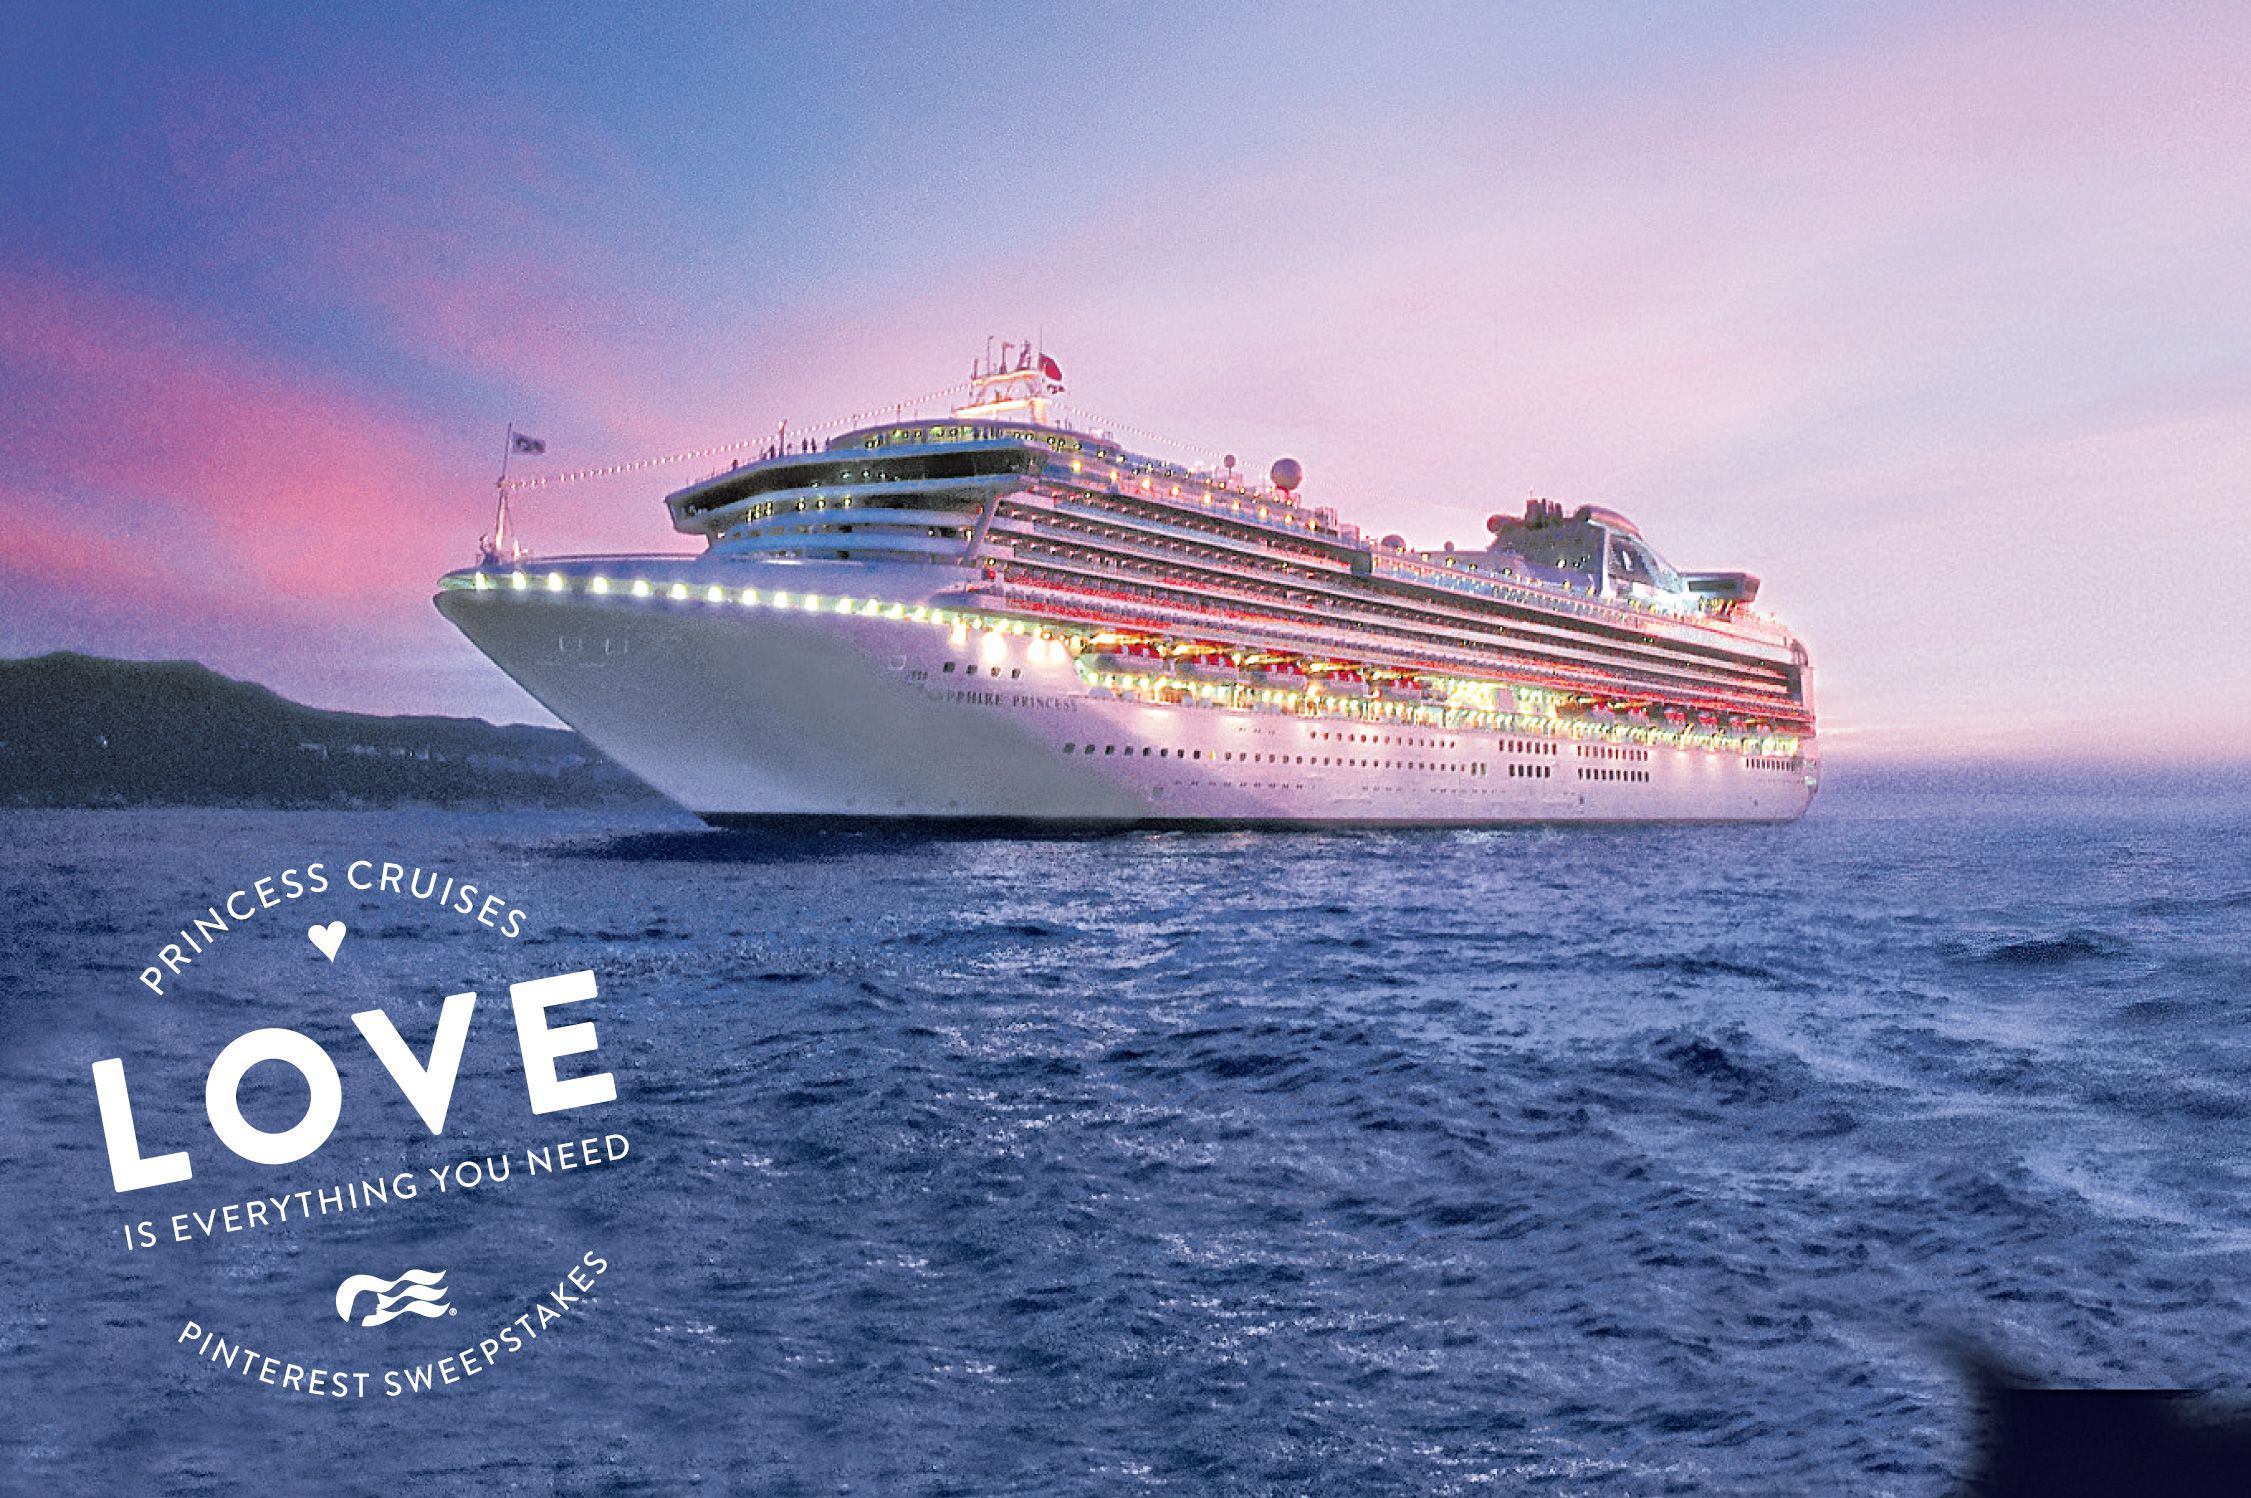 Love is everything you need And Id love to take a cruise